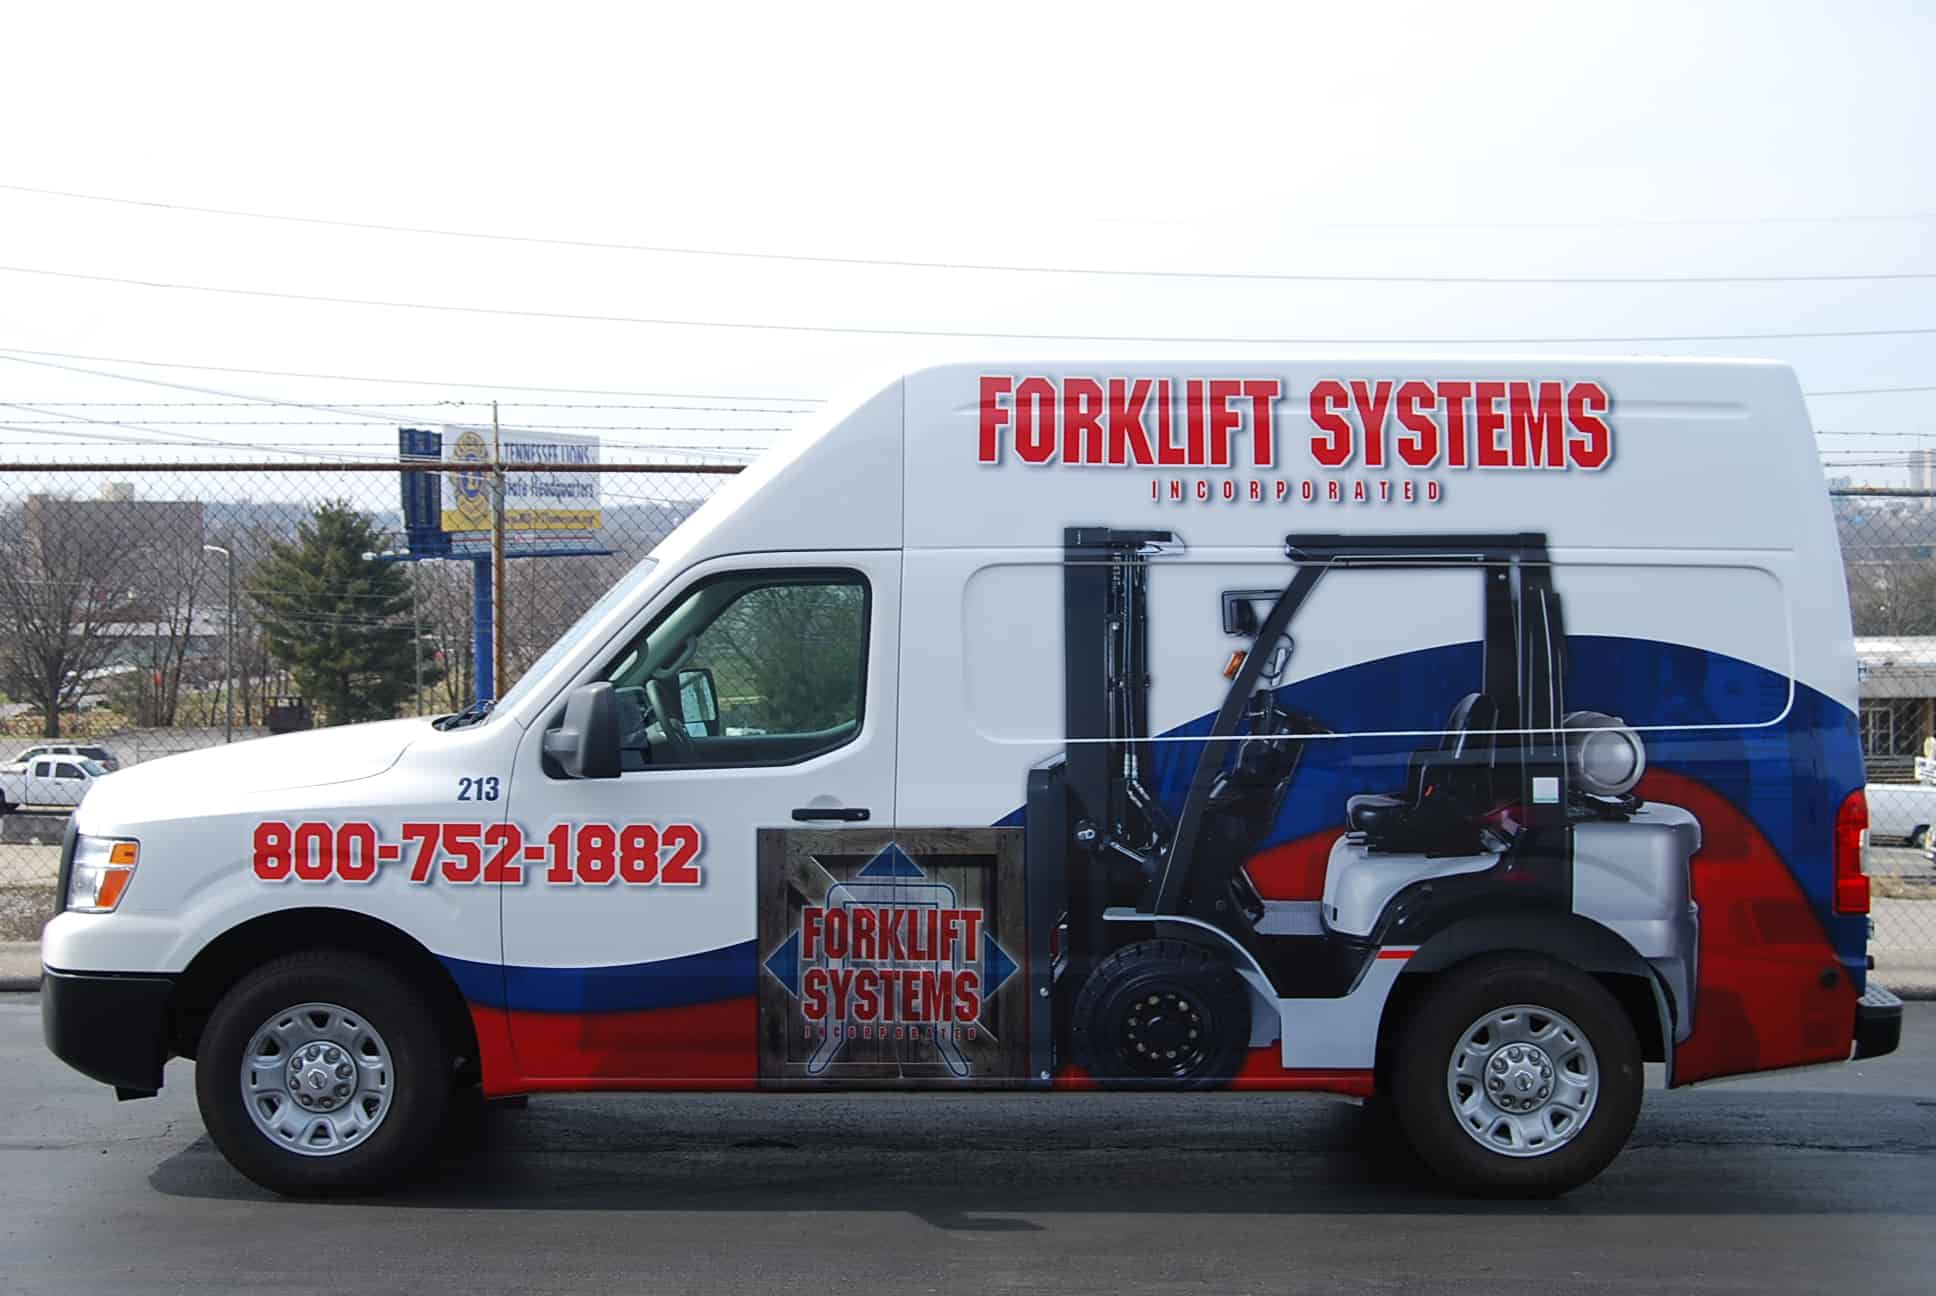 Forklift Systems Service and Repair Van for emergency and planned maintence repairs